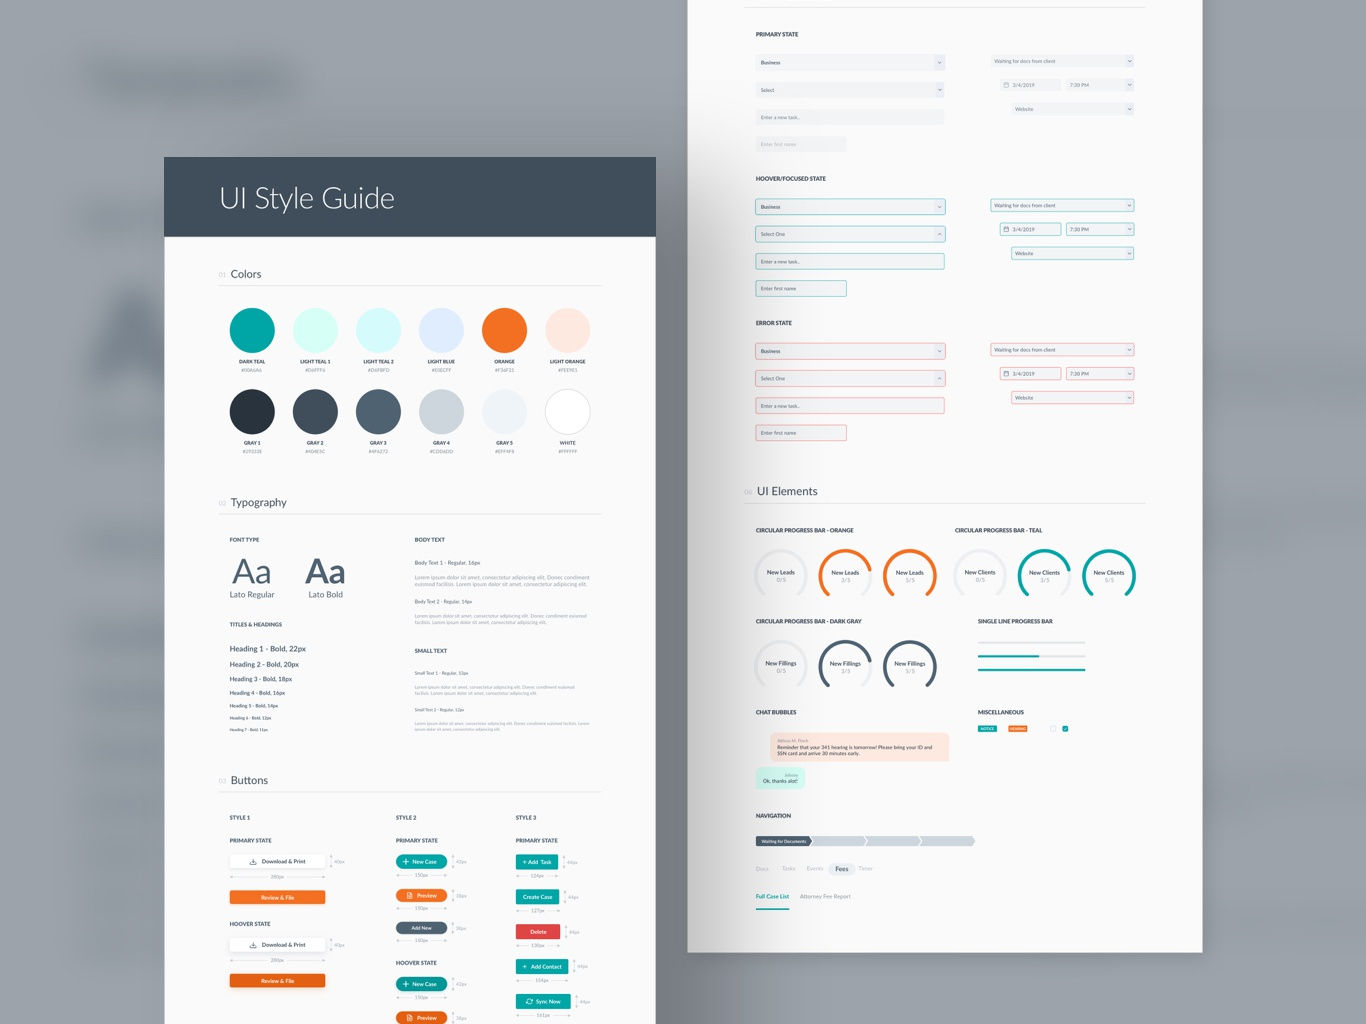 UI Style Guide 2d animation 2020 icons visual design sketch 2d typography button running trends ux ui color whitespace developer style guide 2019